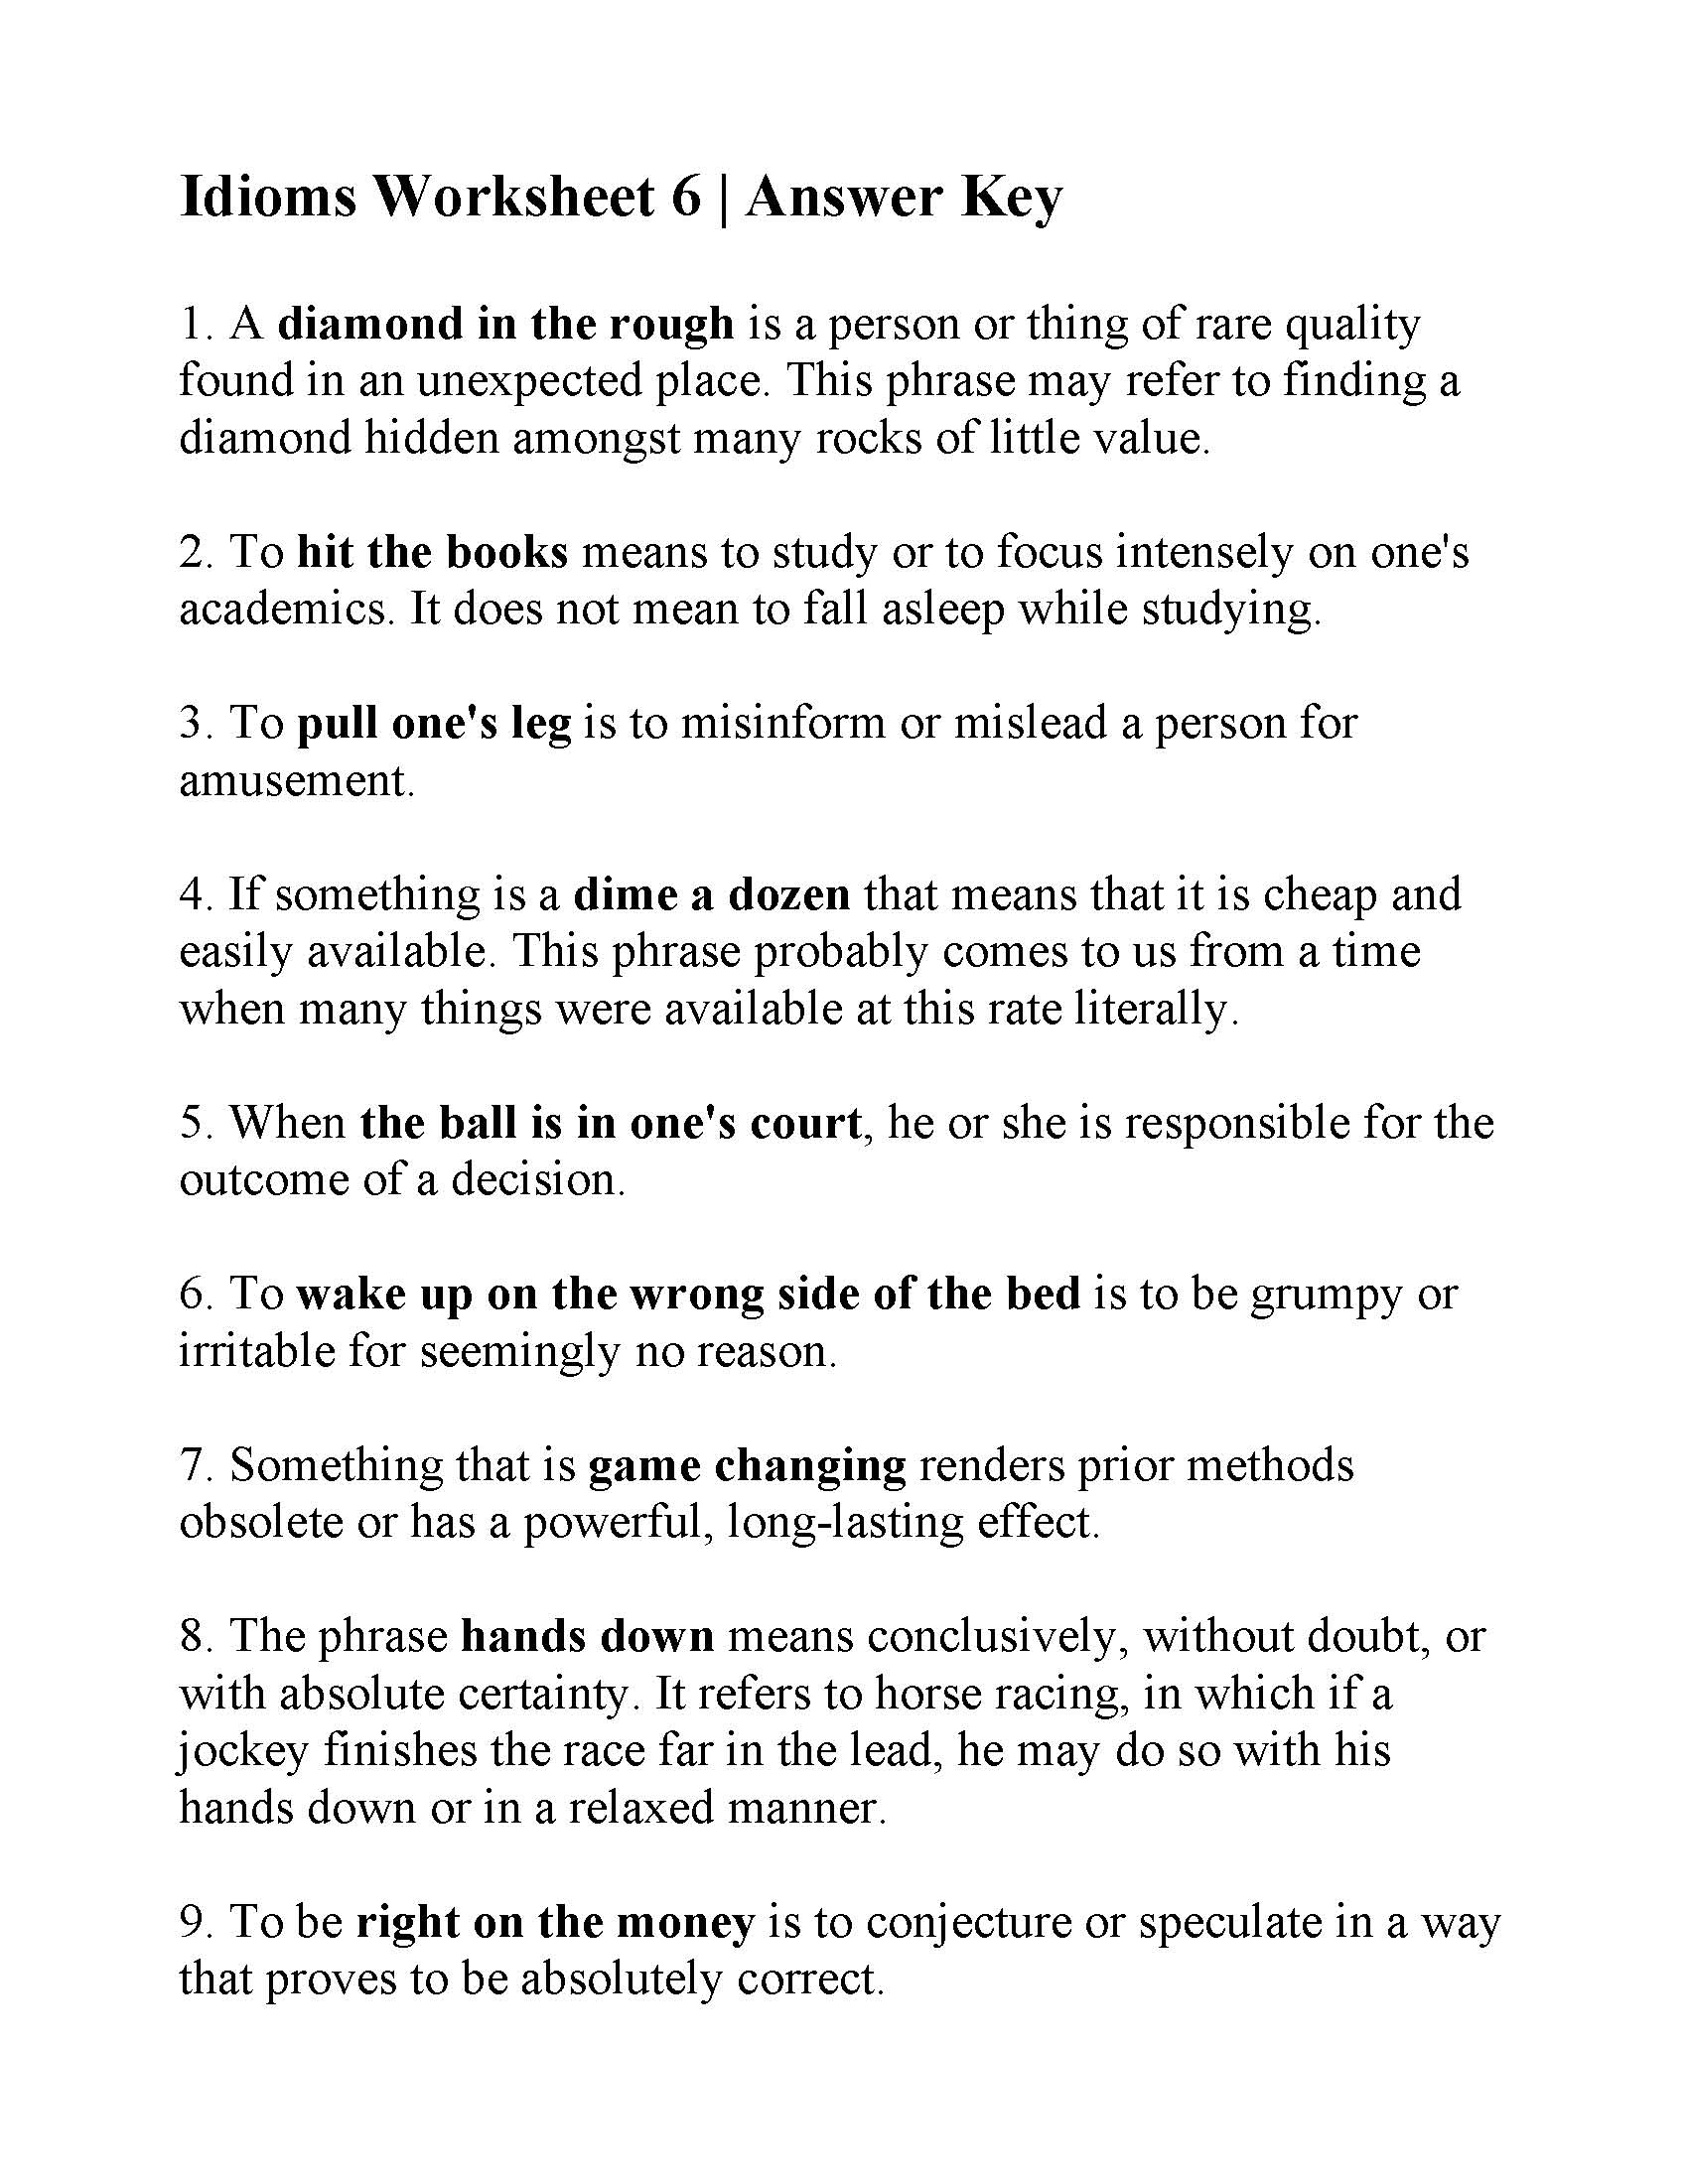 Idioms Worksheet 6 Answers So each idiom is illustrated with a picture (literal meaning) and its real meaning. idioms worksheet 6 answers